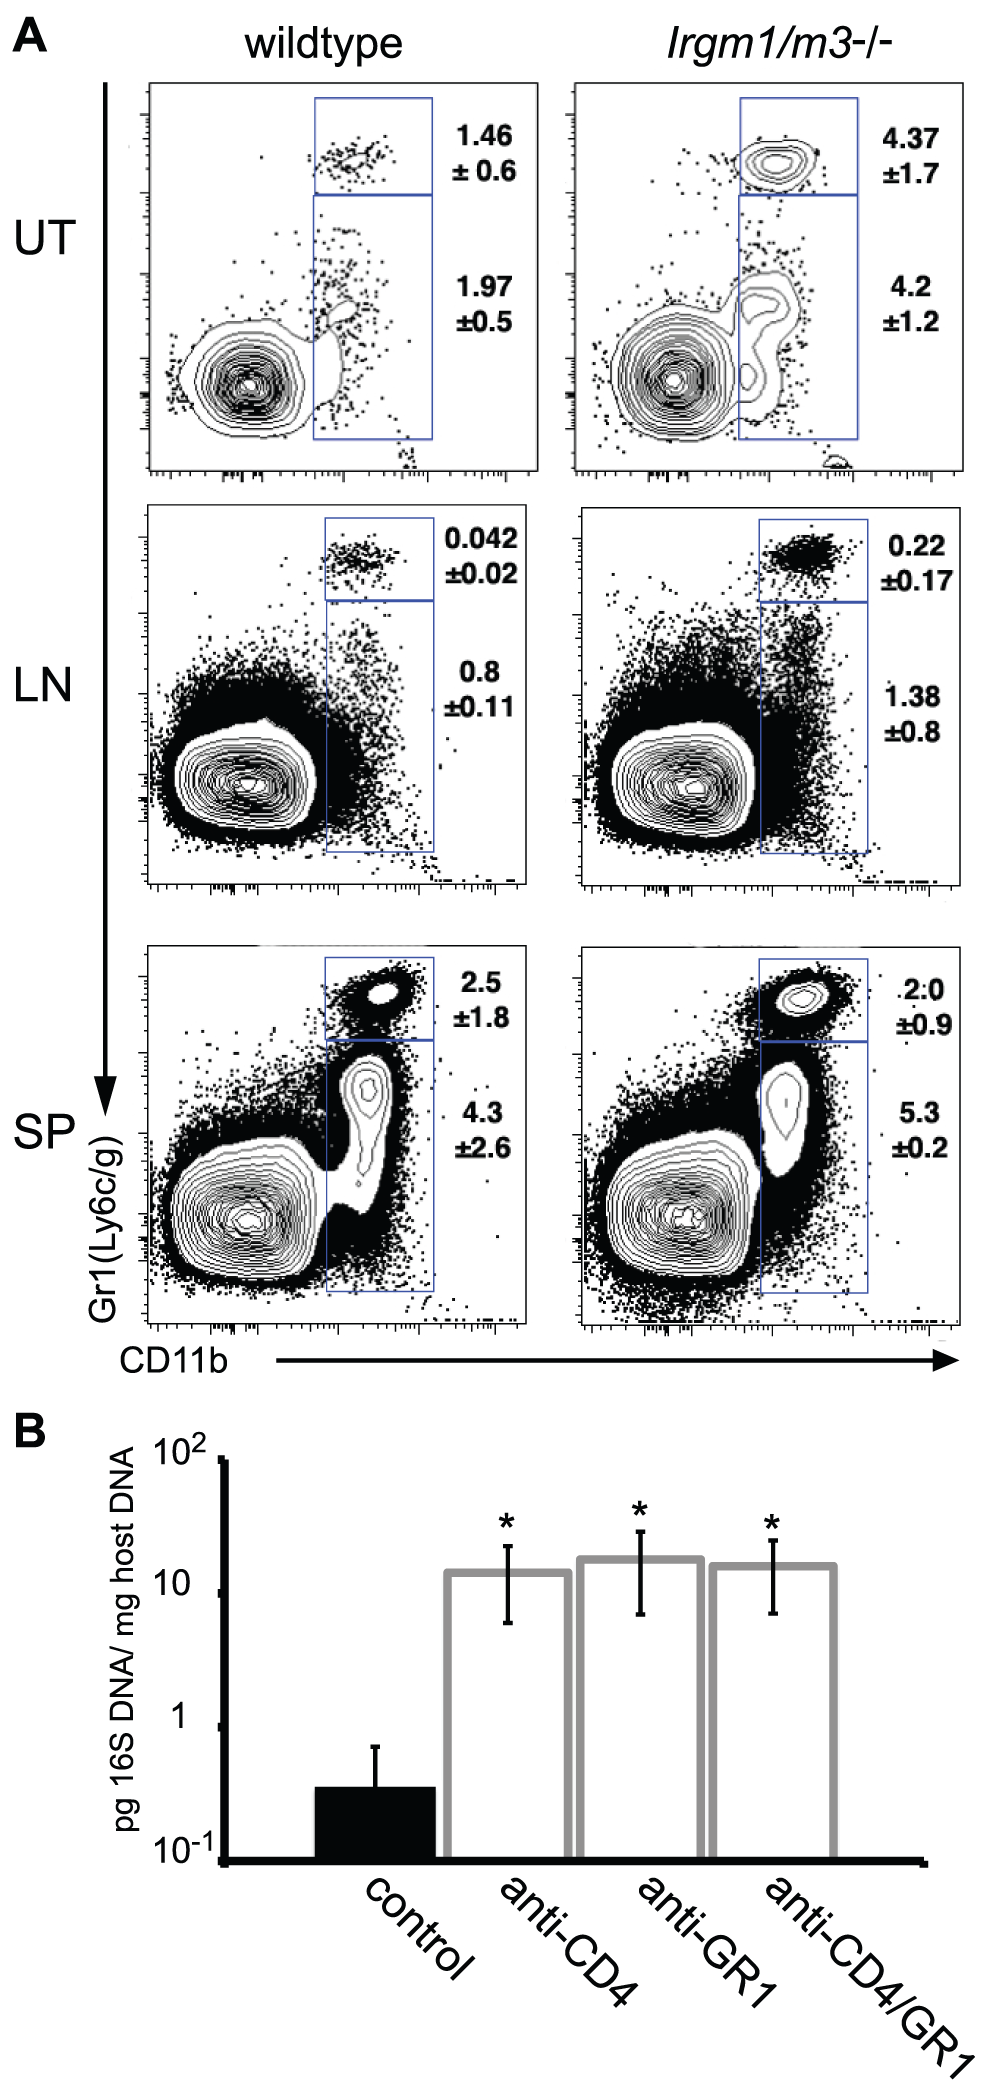 A neutrophil surge into the uterus of <i>C. trachomatis</i>-infected <i>Irgm1/m3</i><sup>(-/-)</sup> mice plays a role in immune clearance.